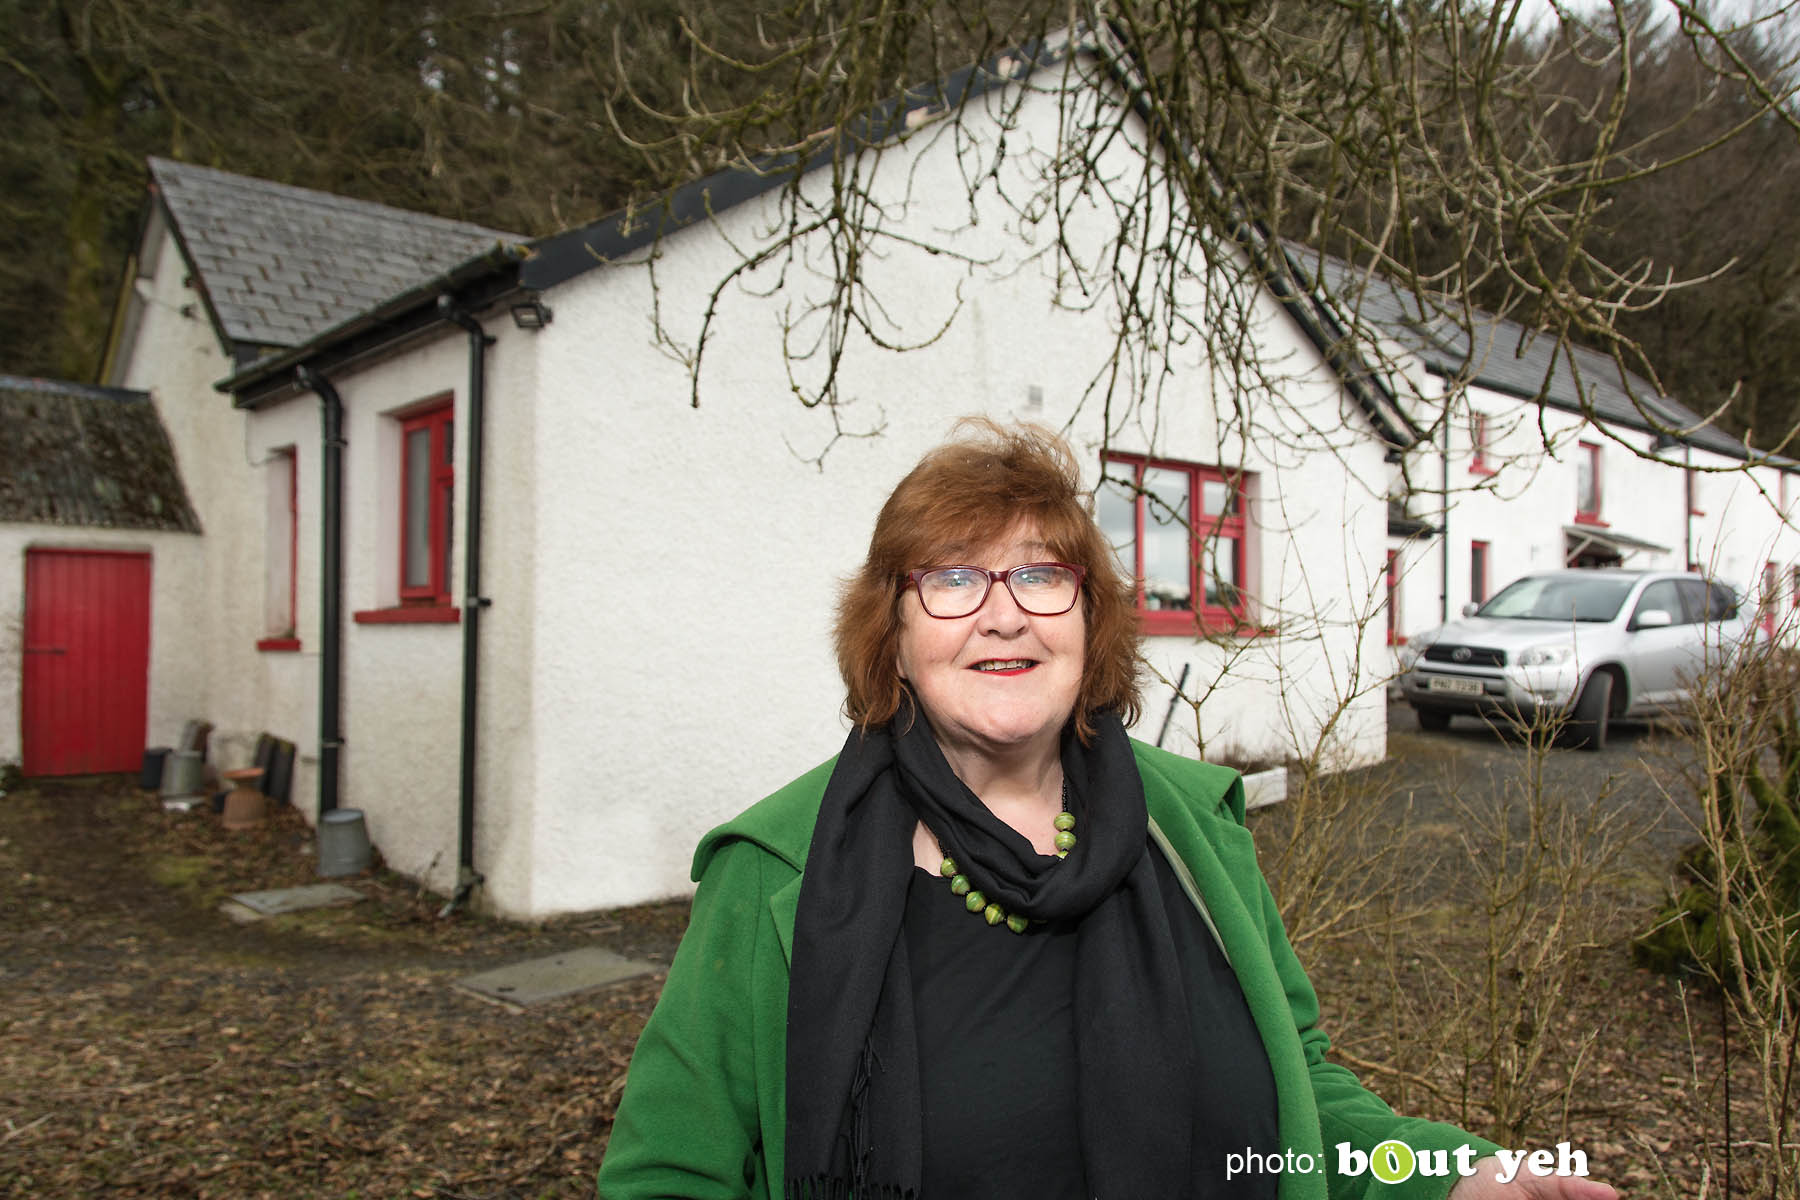 Liz Weir, Ballyeamon Barn Hostel, Glenariff, Northern Ireland - photo 1014.